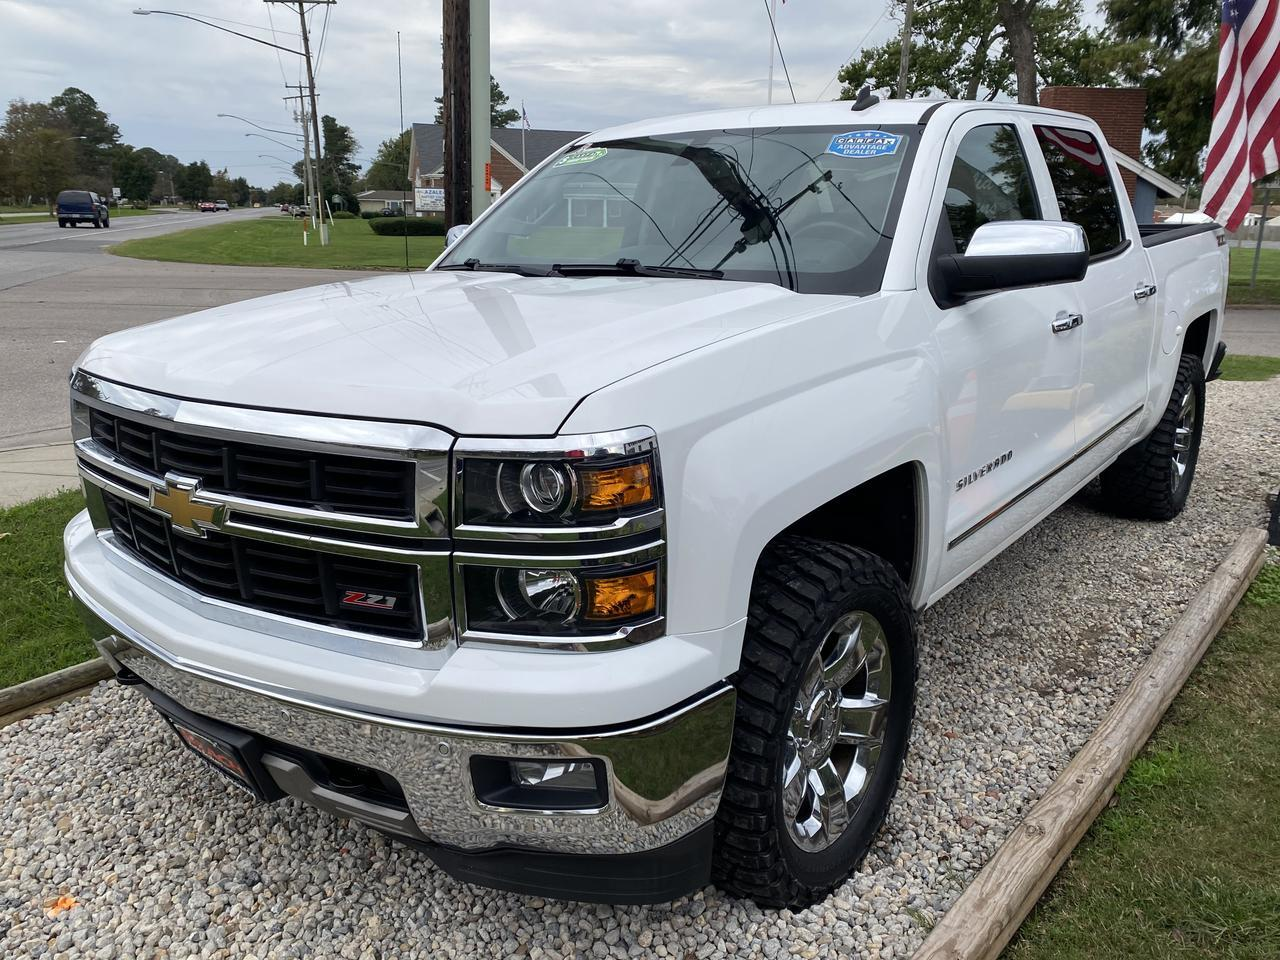 2014 CHEVROLET SILVERADO 1500 LTZ CREW CAB 4X4, WARRANTY, Z-71, LEATHER, NAV, HEATED/COOLED SEATS, SUNROOF, CLEAN CARFAX! Norfolk VA